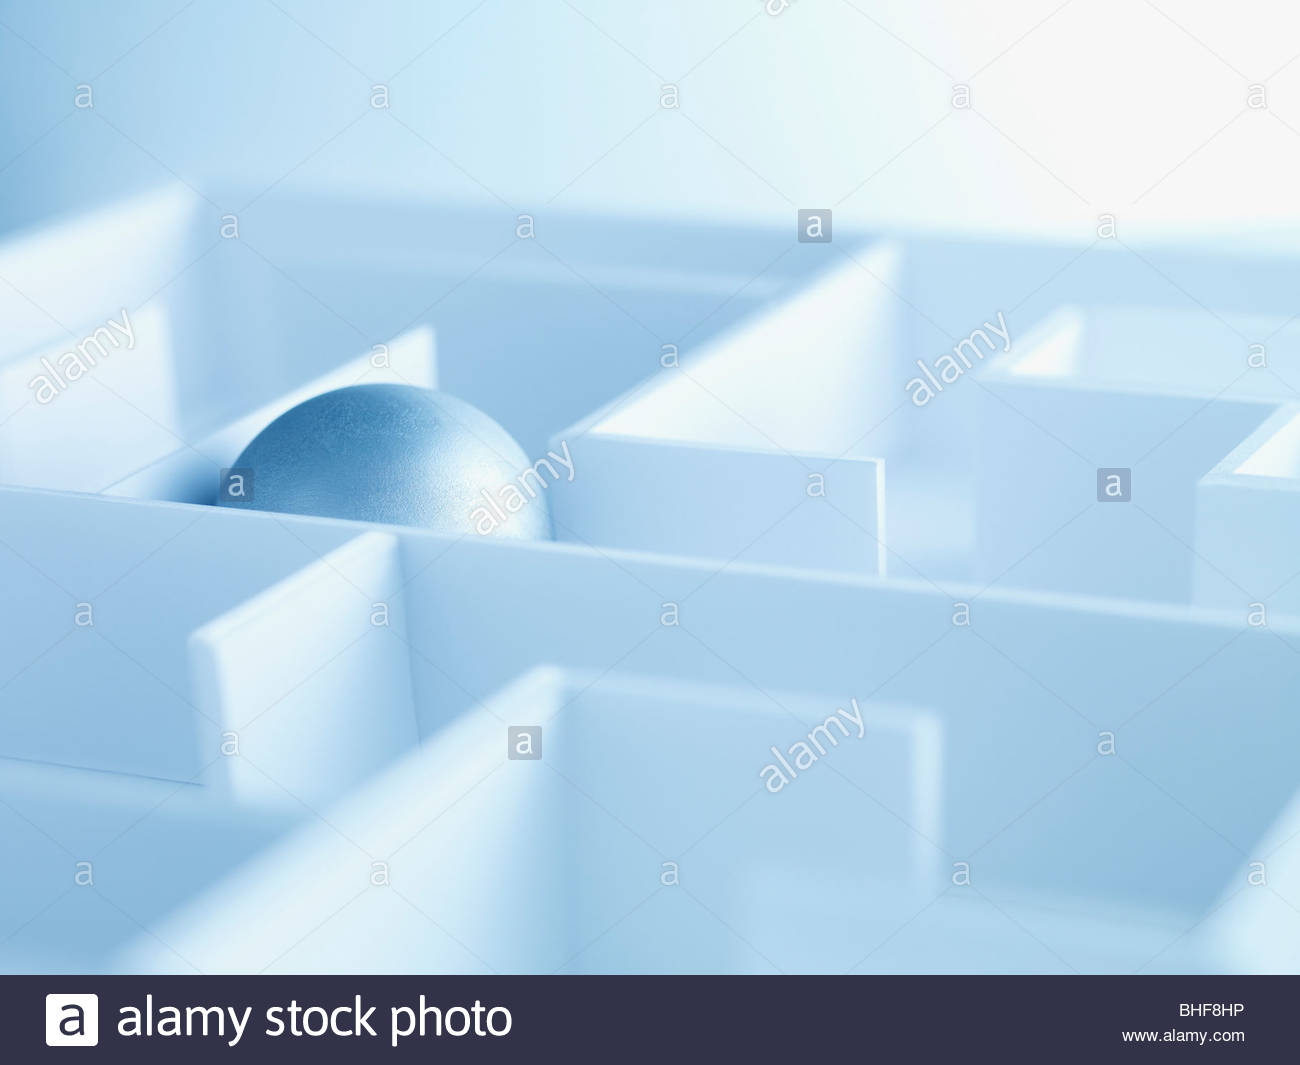 Ball trapped in maze - Stock Image